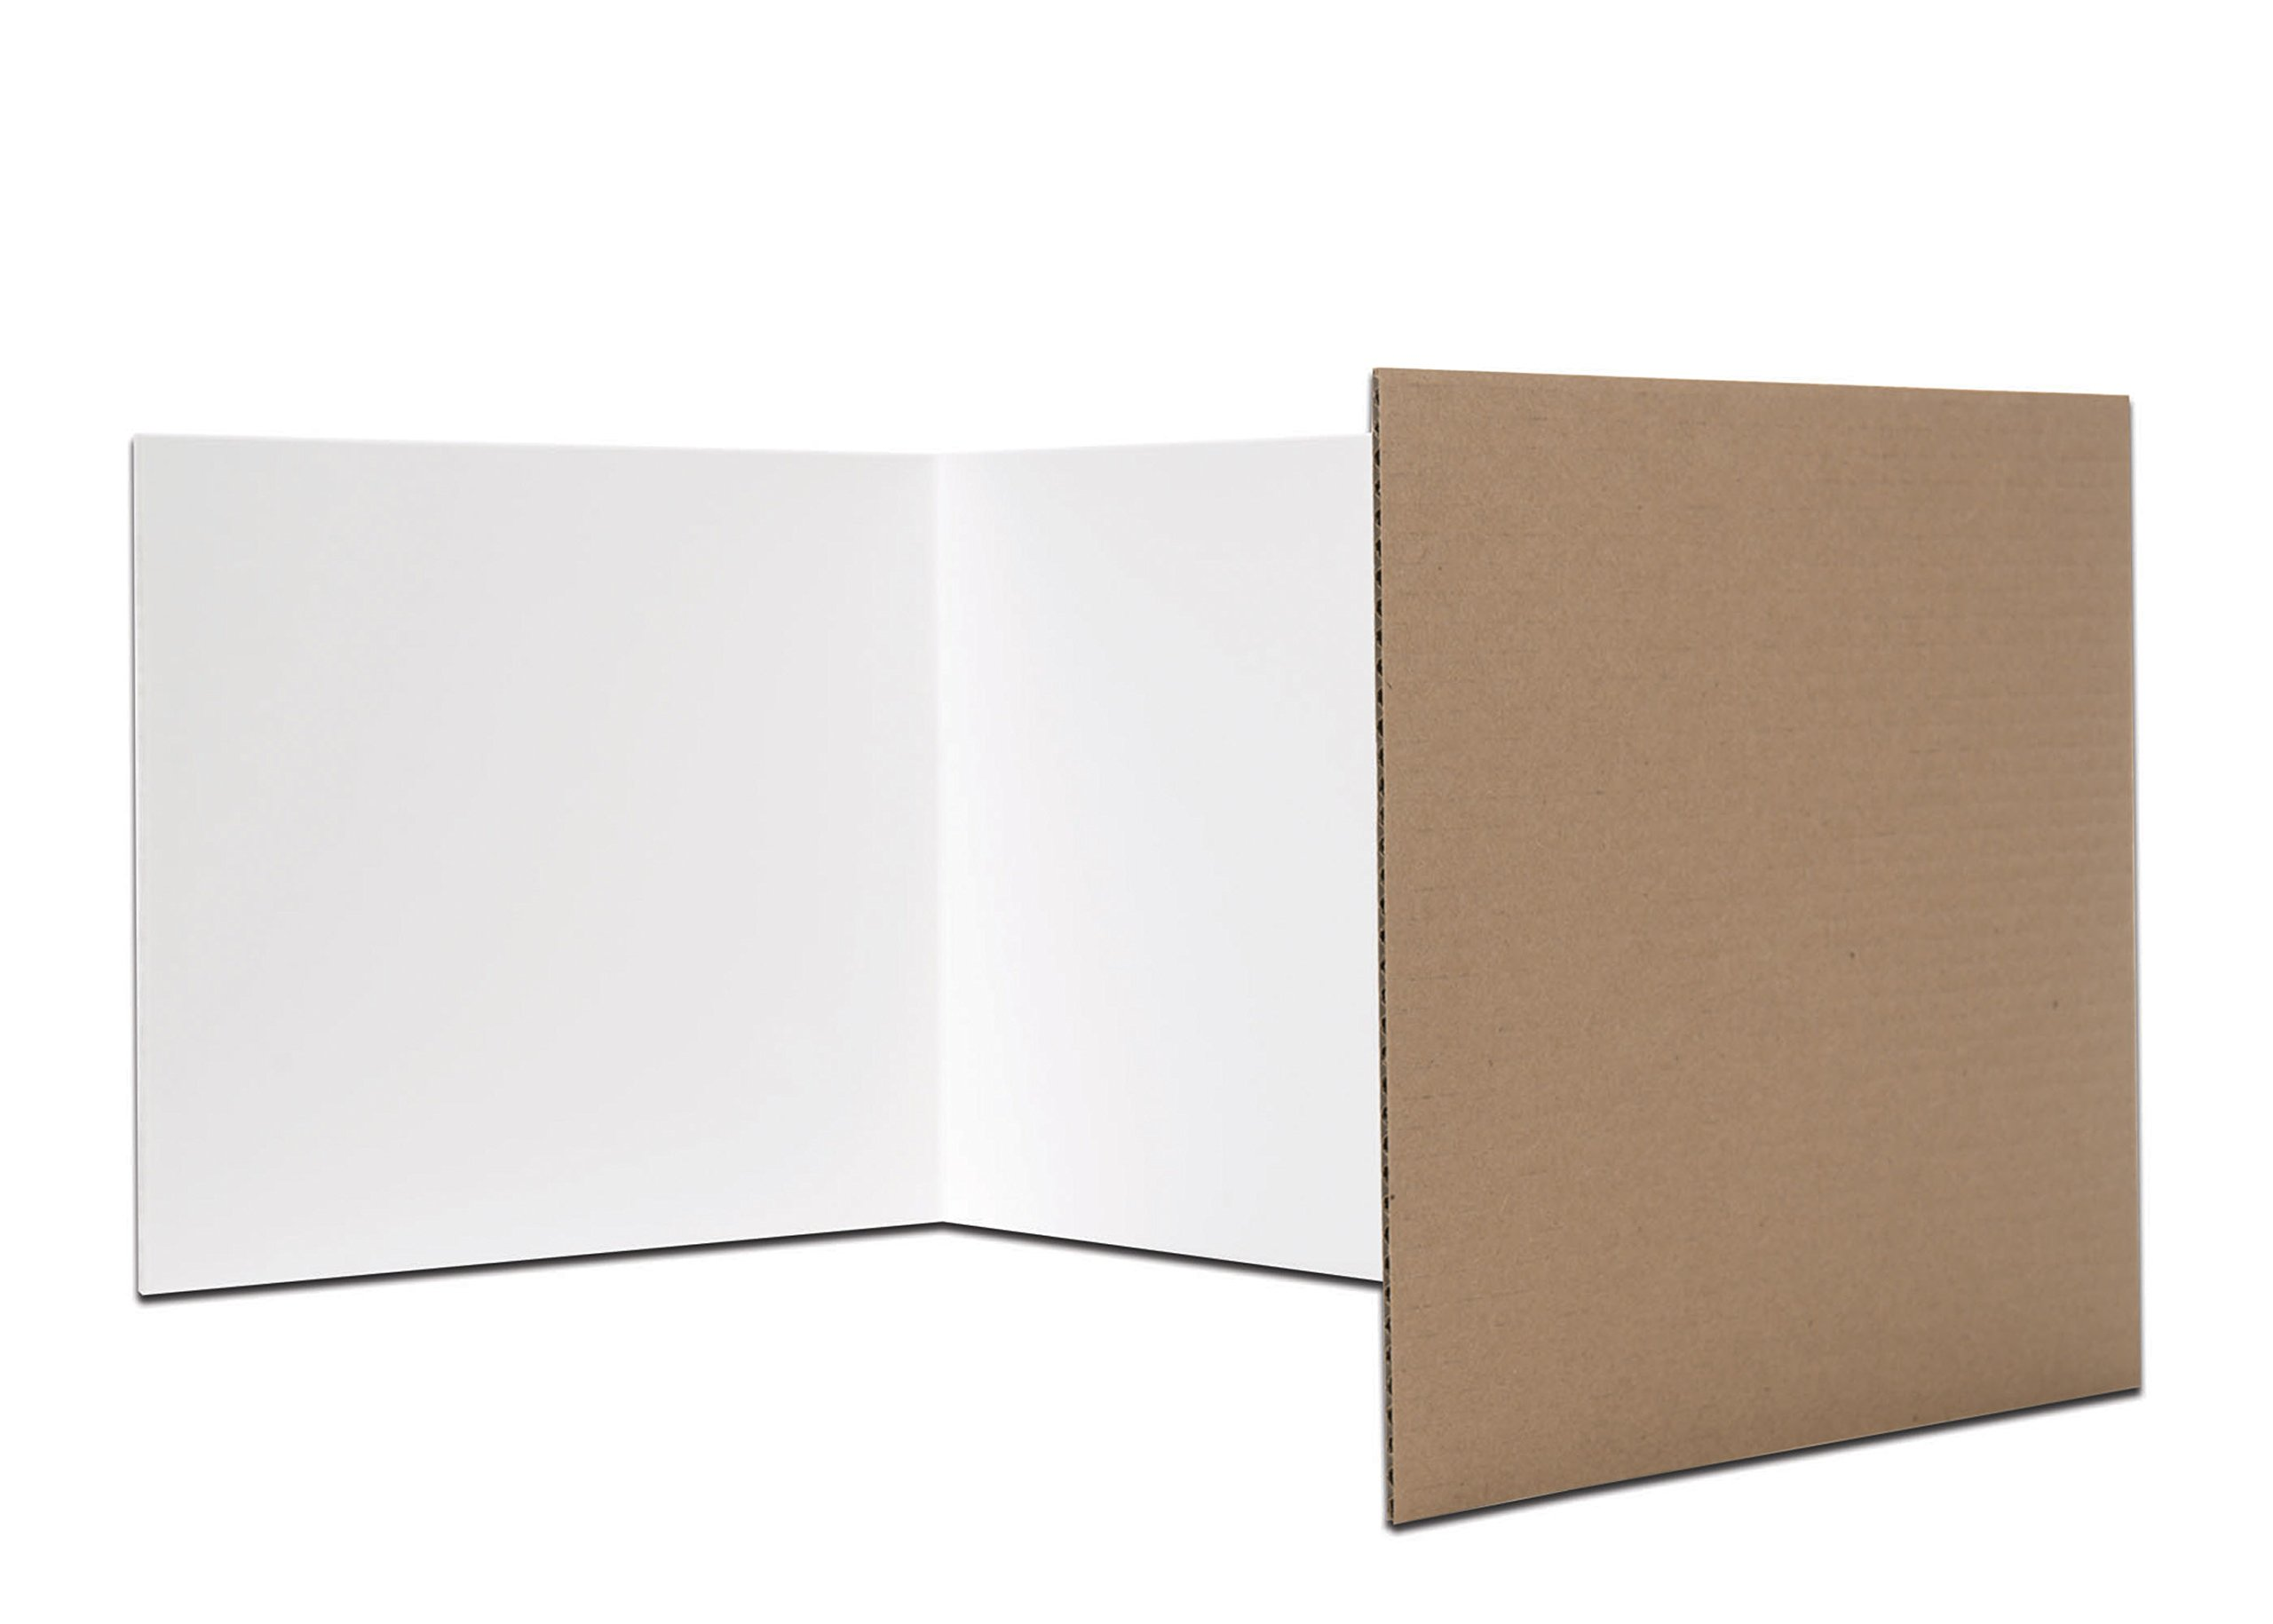 Flipside Products 61848 18'' x 48'' Privacy Shield, White (Pack of 24) by Flipside Products (Image #1)